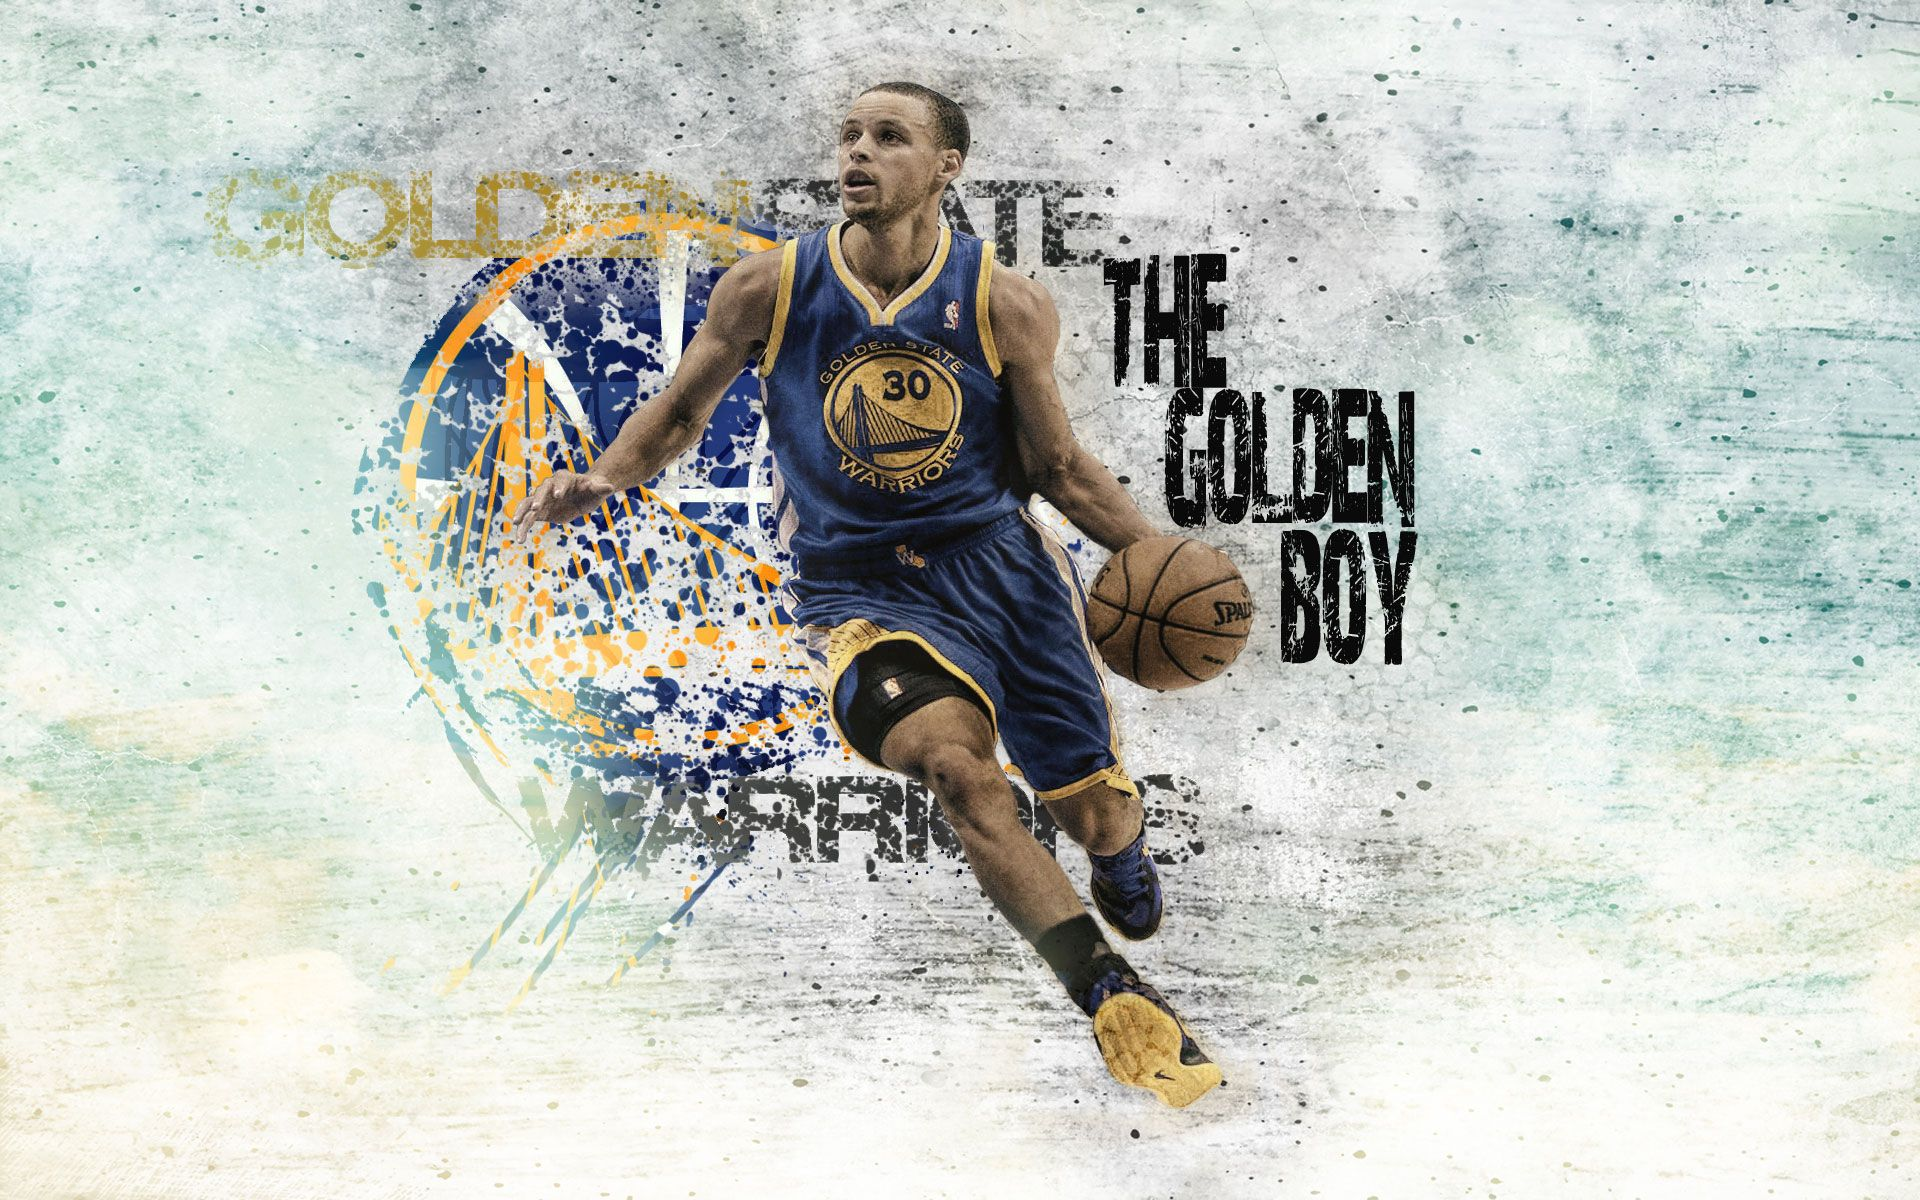 Stephen Curry Wallpaper Logo Best Wallpaper Hd Stephen Curry Wallpaper Stephen Curry Wallpaper Hd Stephen Curry Basketball